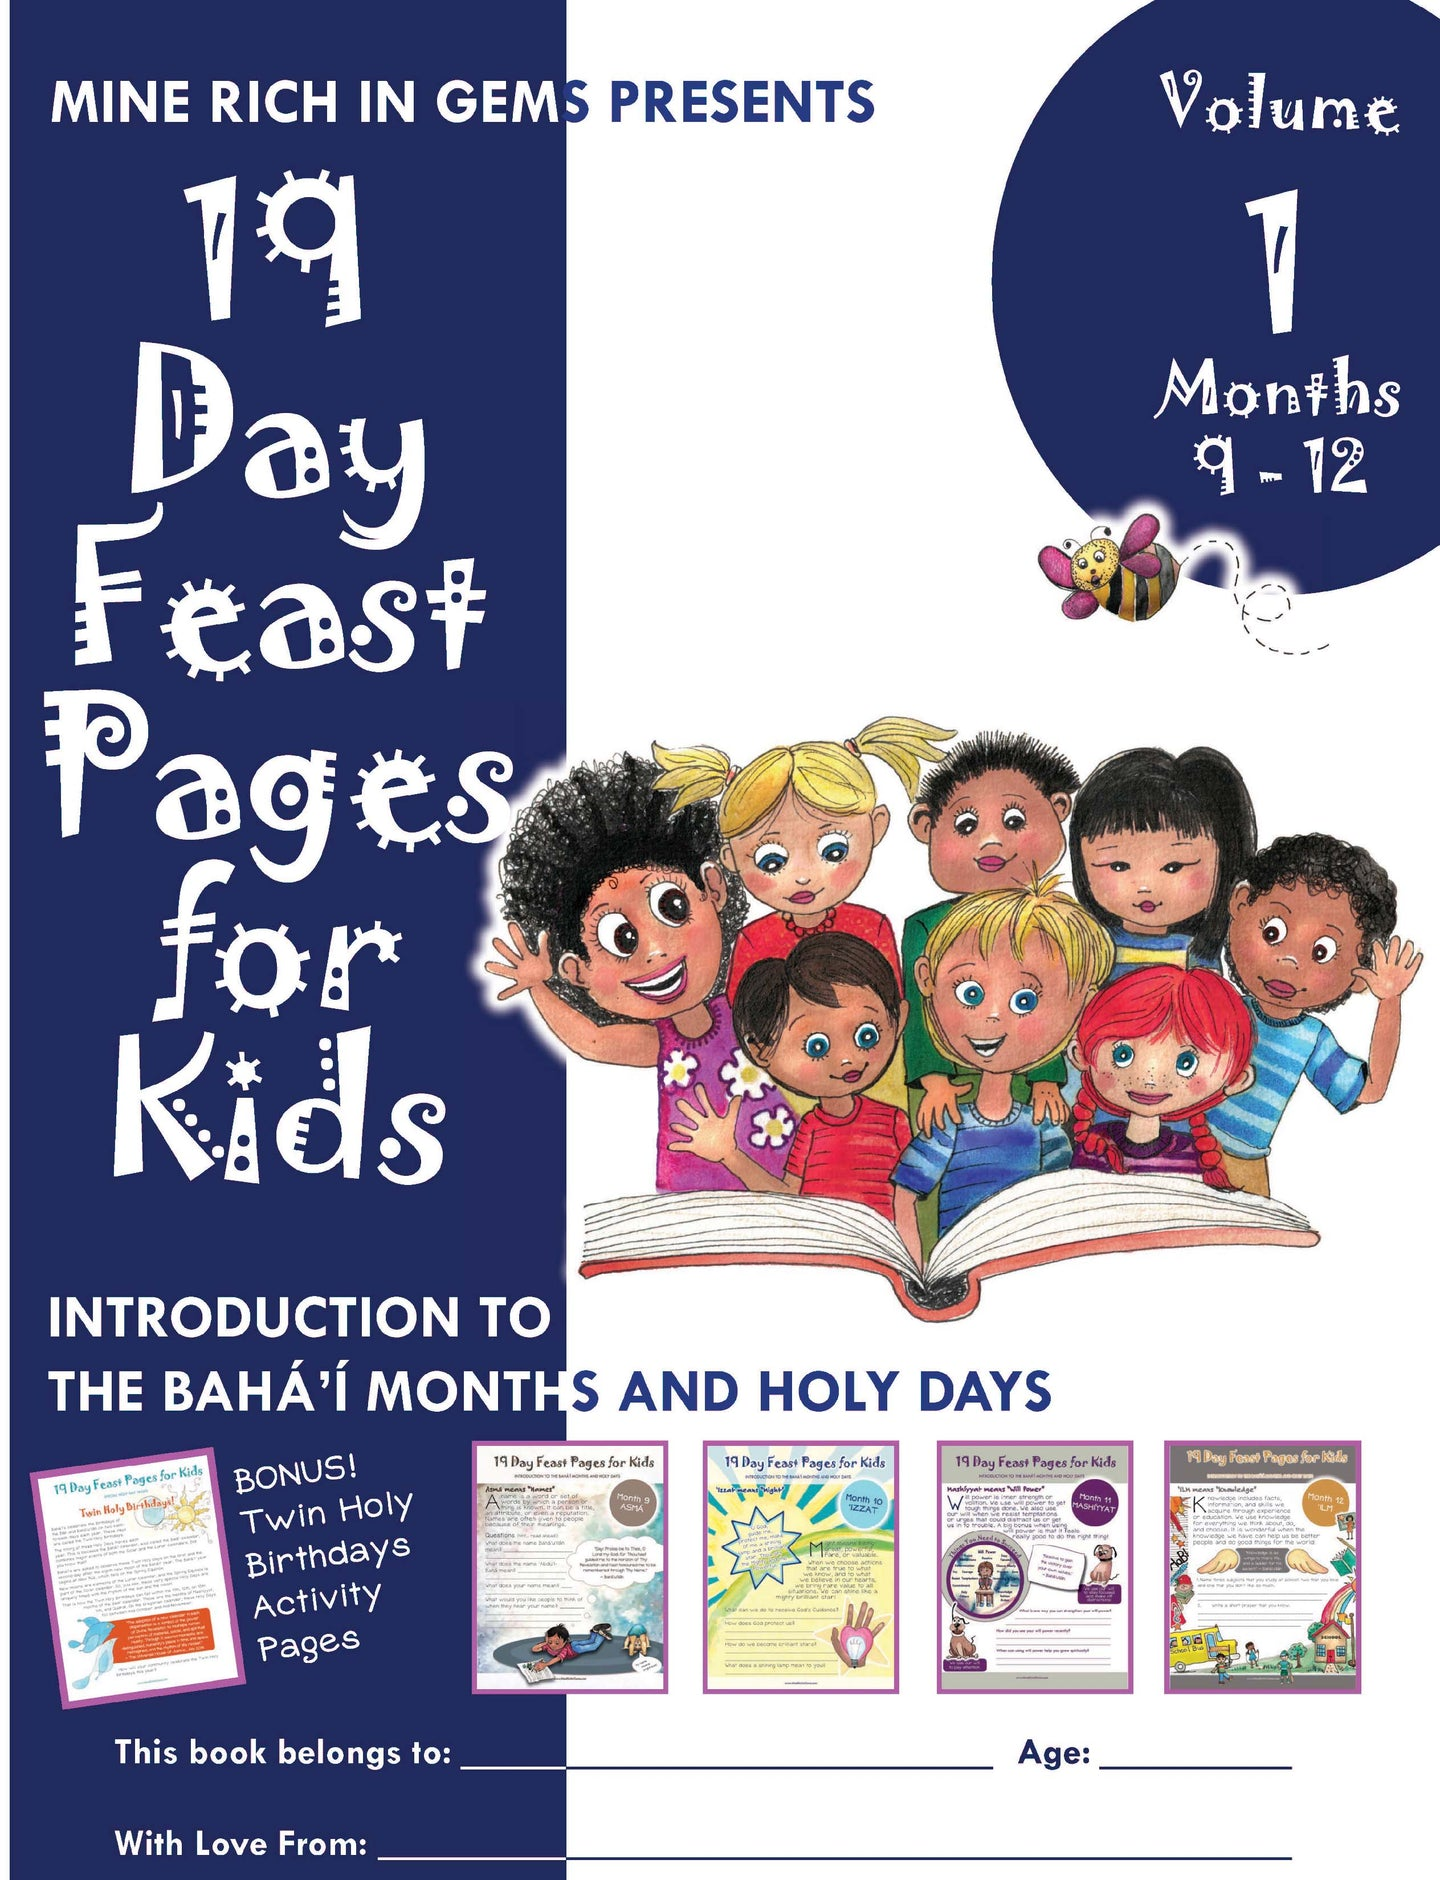 19 Day Feast Pages for Kids: Vol 1 Bahá'í Months & Holy Days | Months 9-12 | PRINTED BUNDLE 3